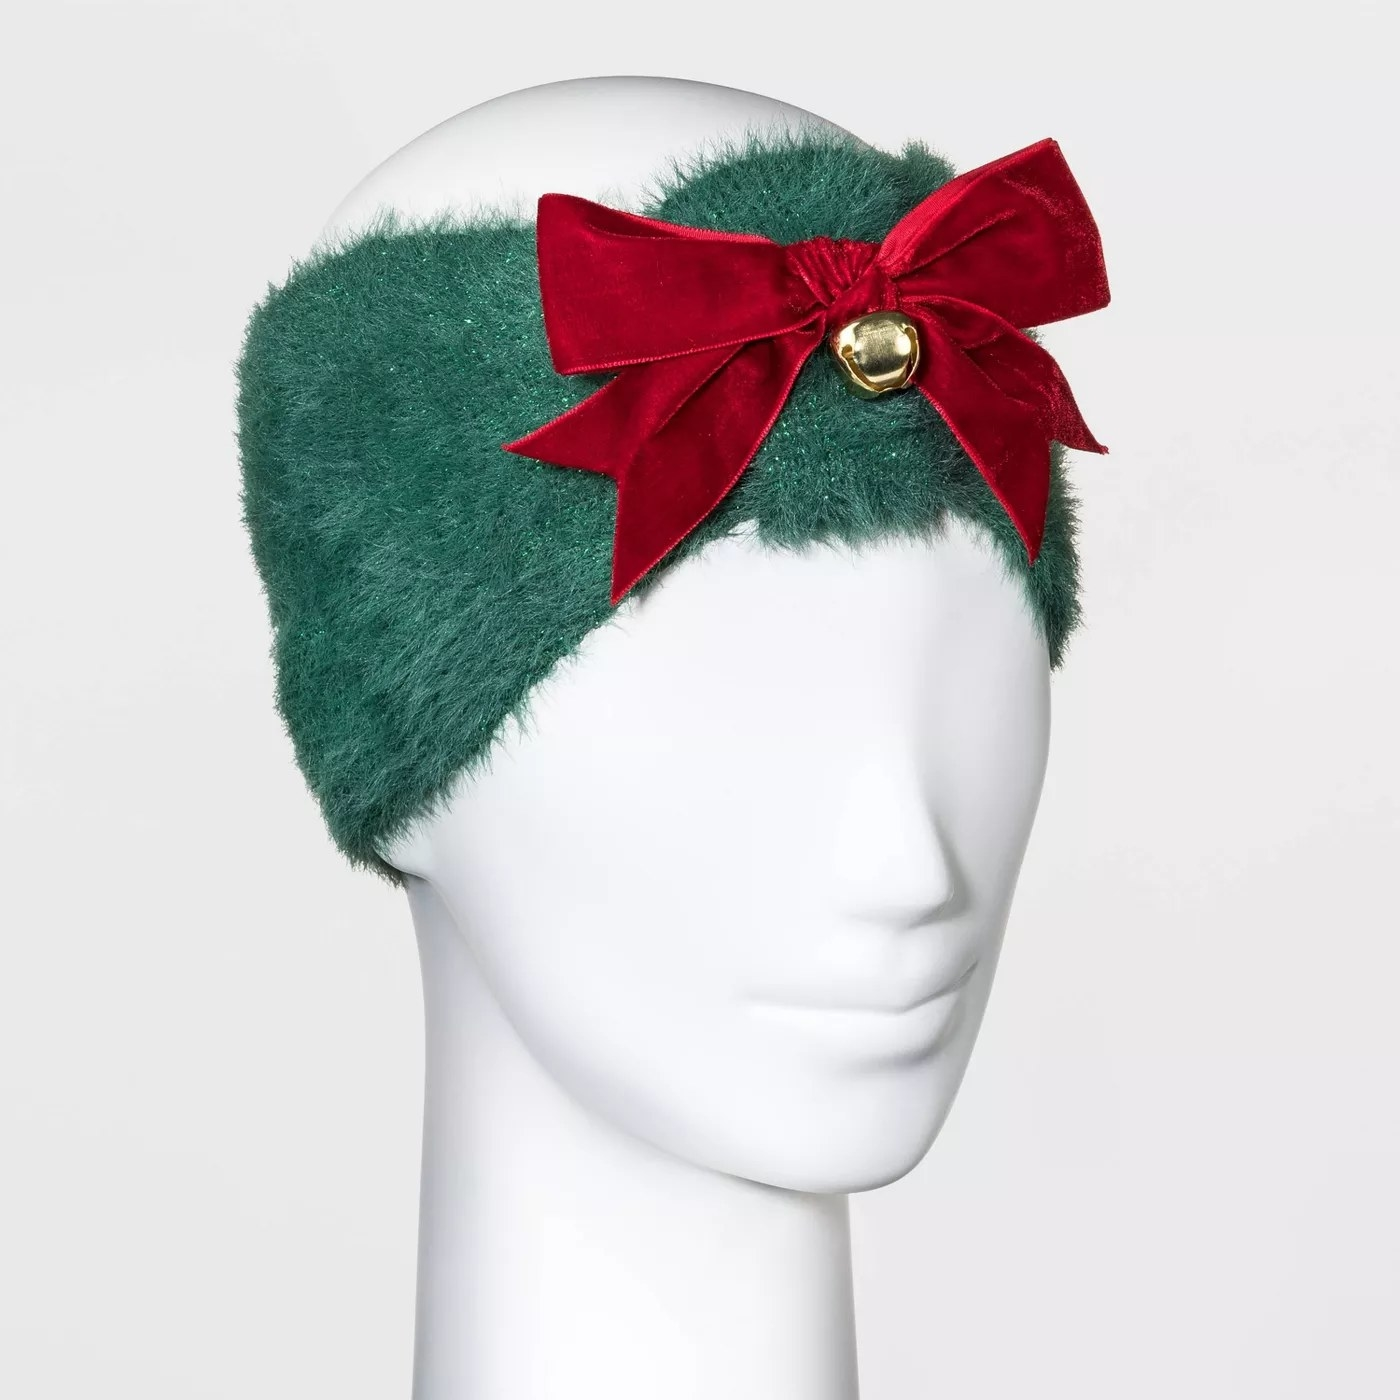 Green headband with red bow. Jingle bell also hanging from the bow.